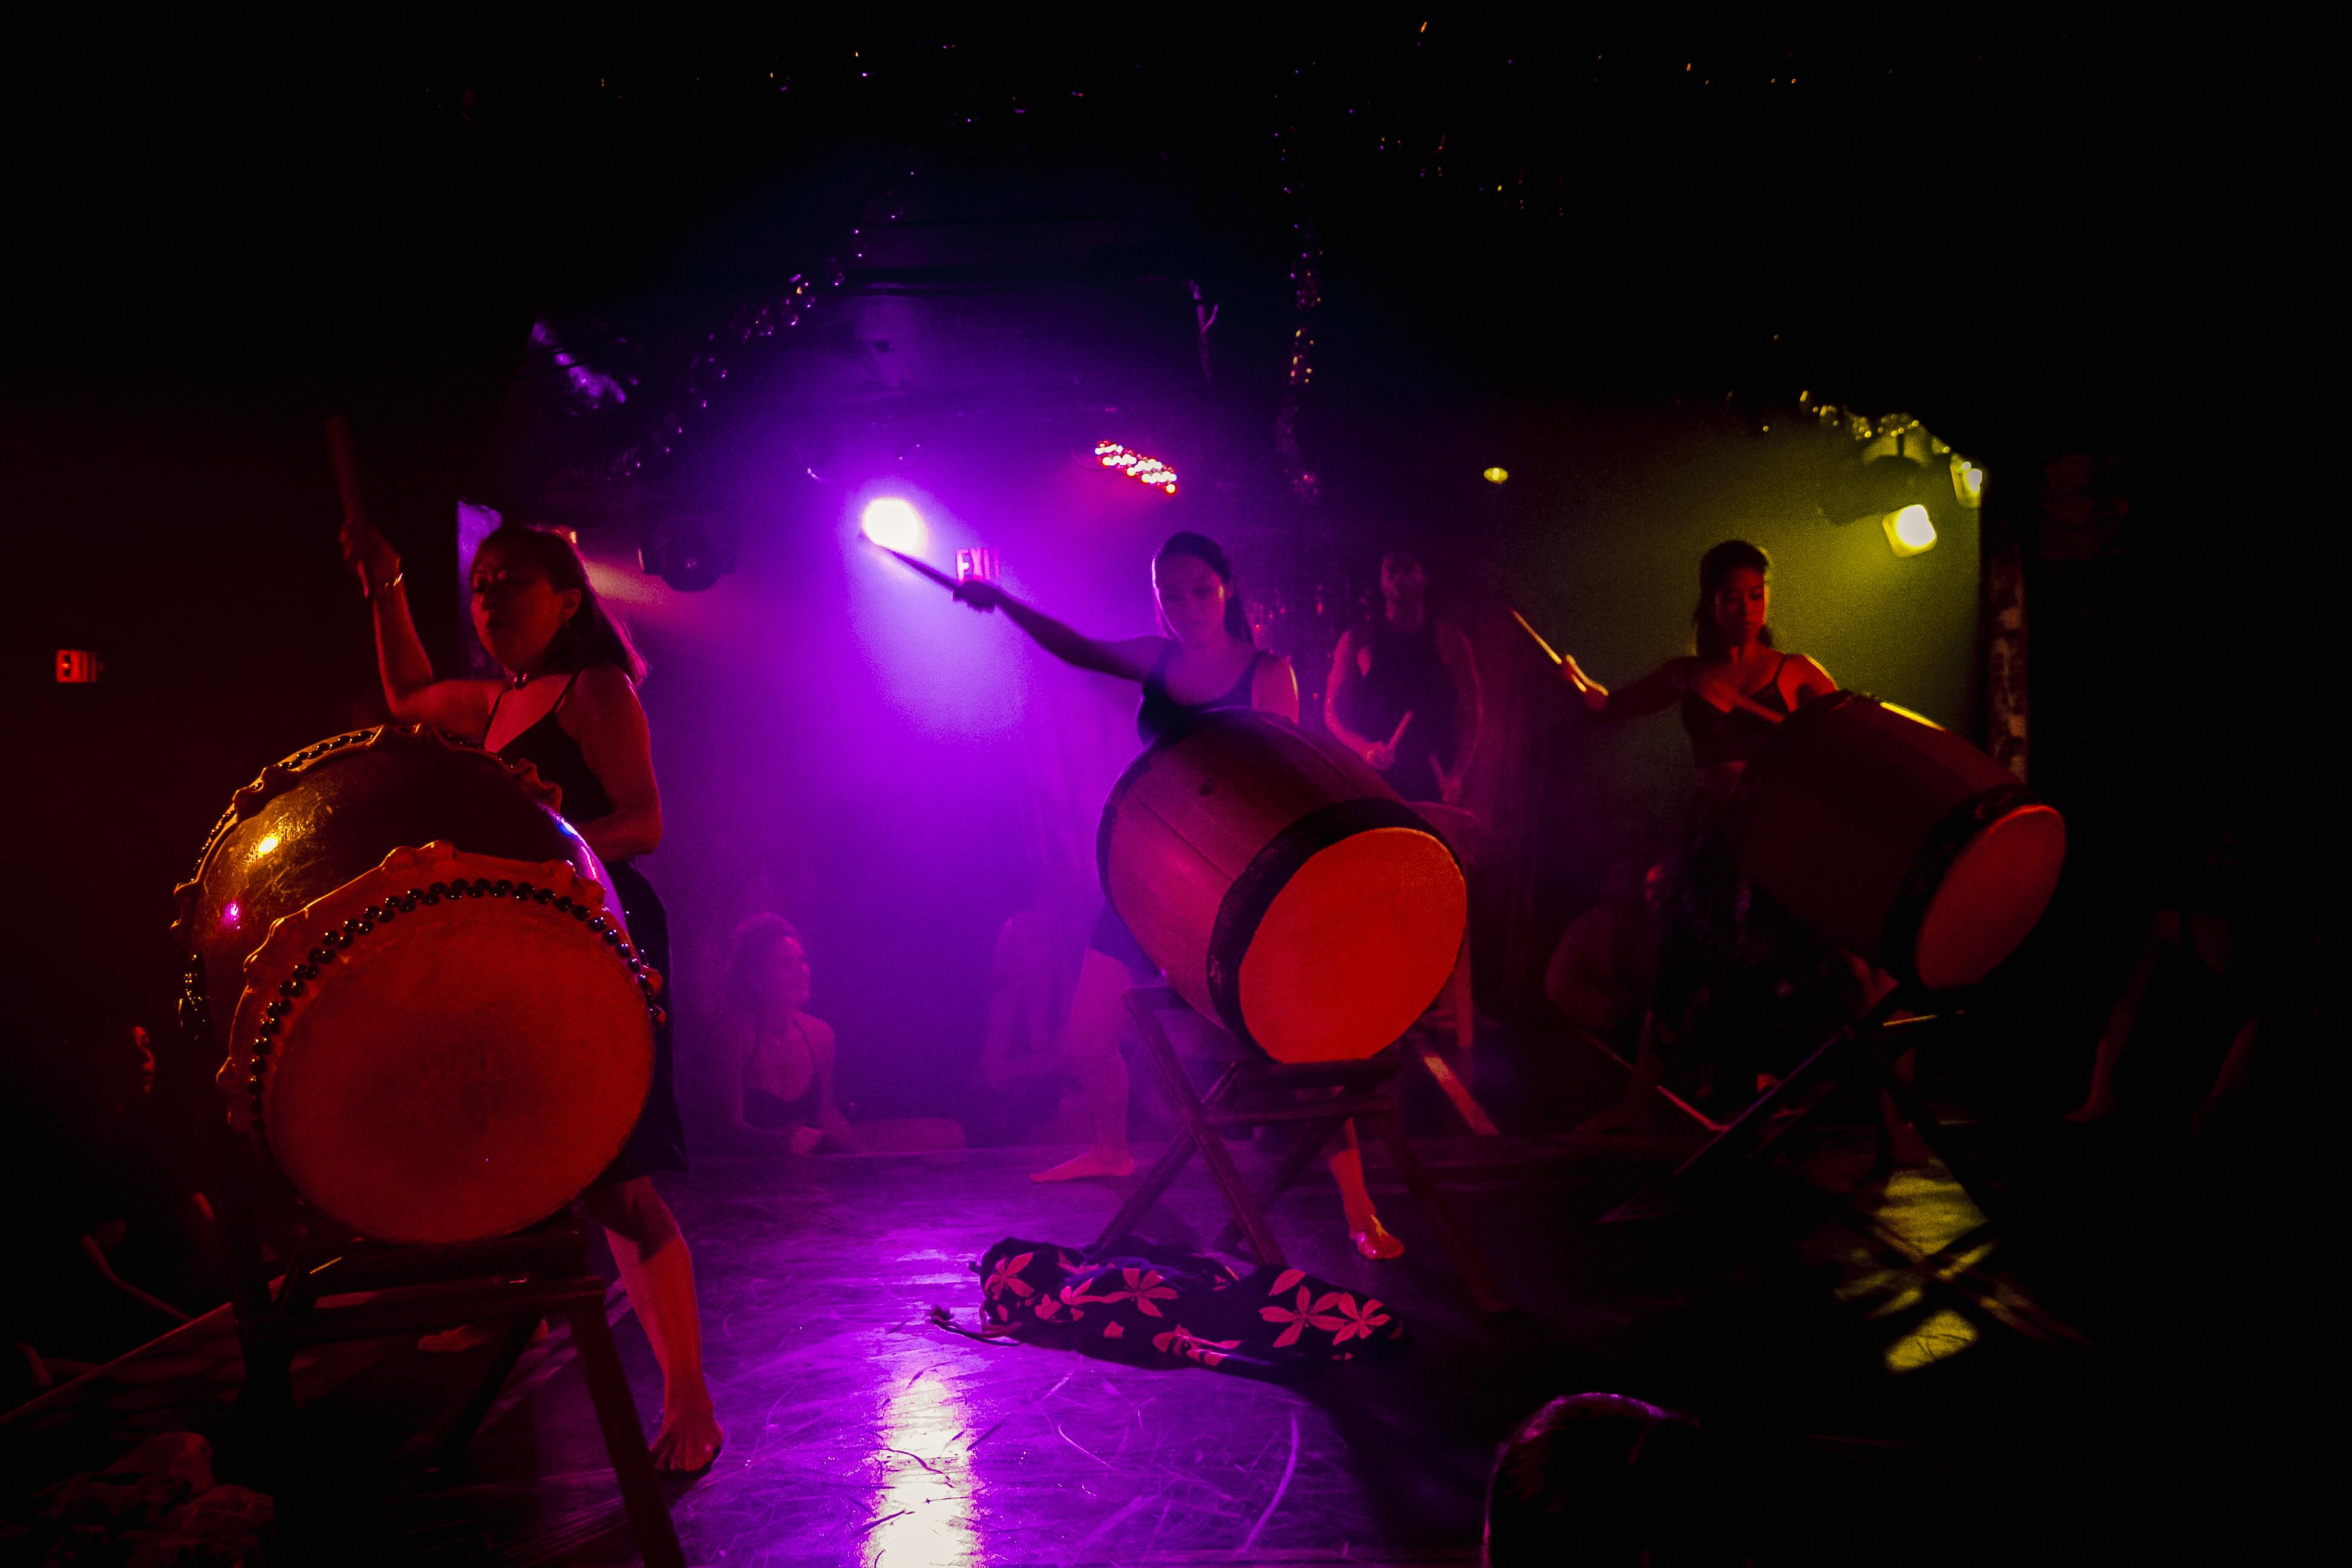 Three huge drums are held by women holding drumsticks high, they are illuminated in a dark space by pink, red, and yellow lights.